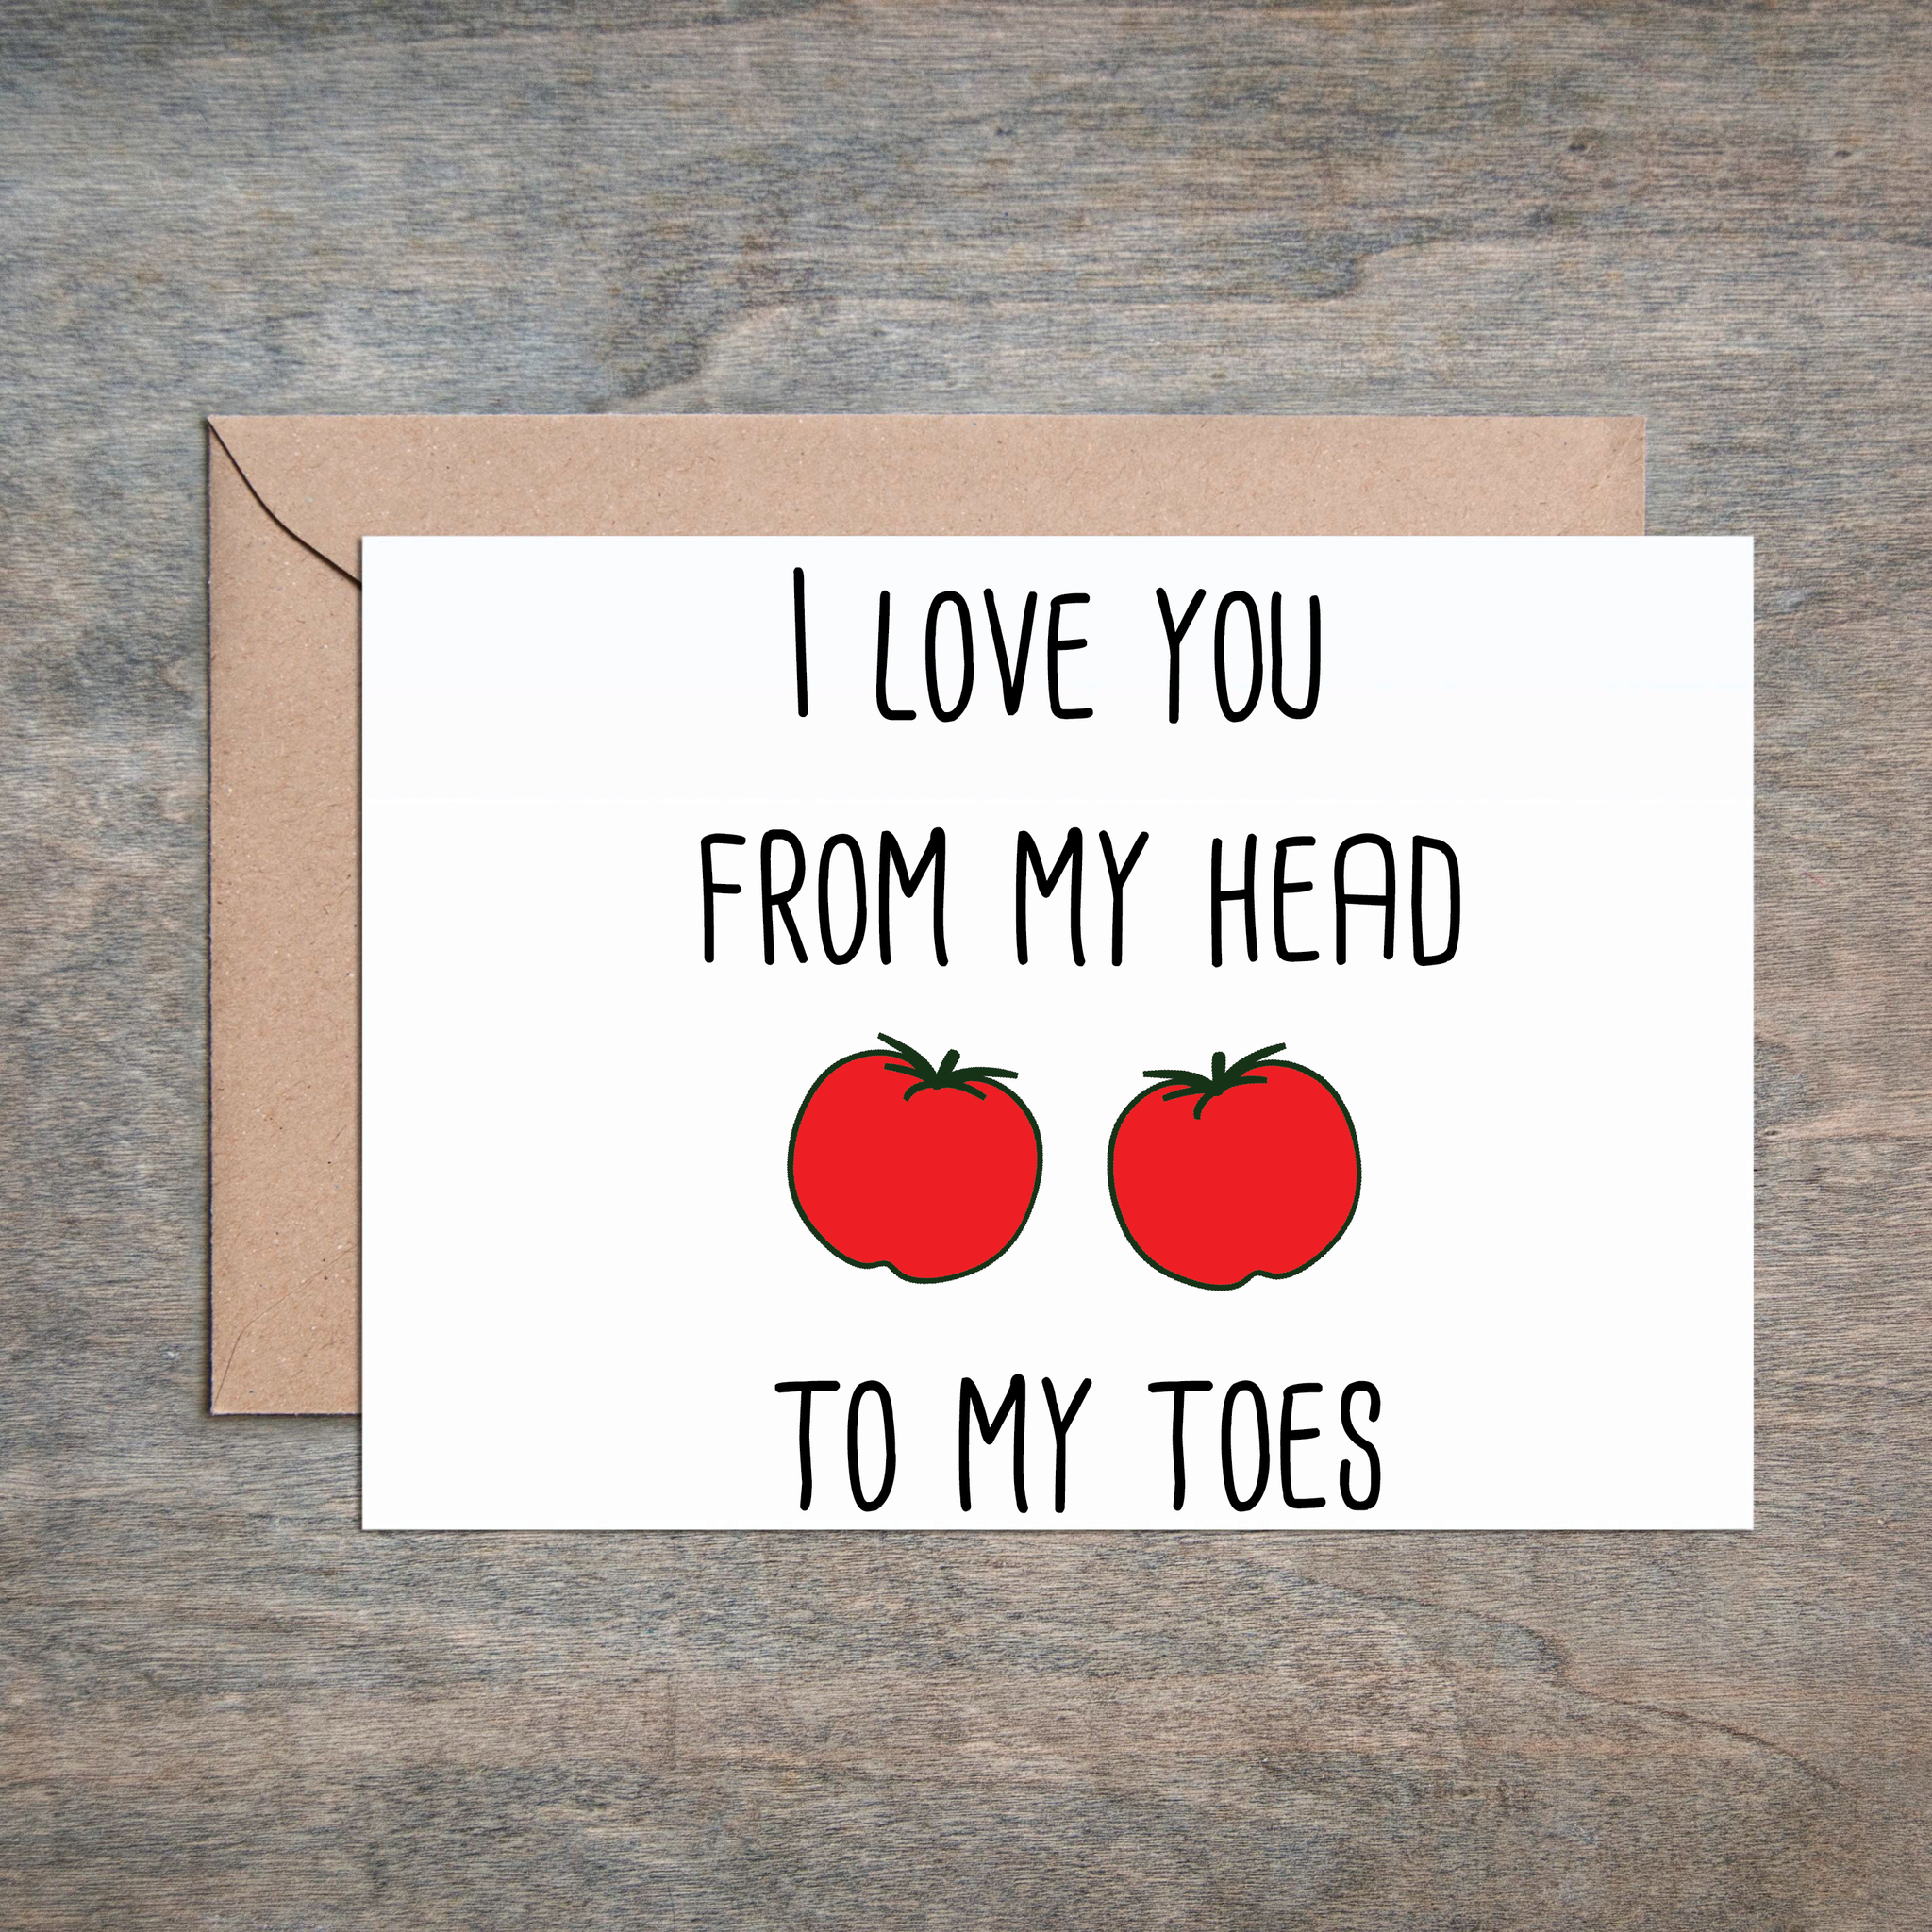 I Love You From My Head to My Toes Tomatoes Funny Anniversary Card